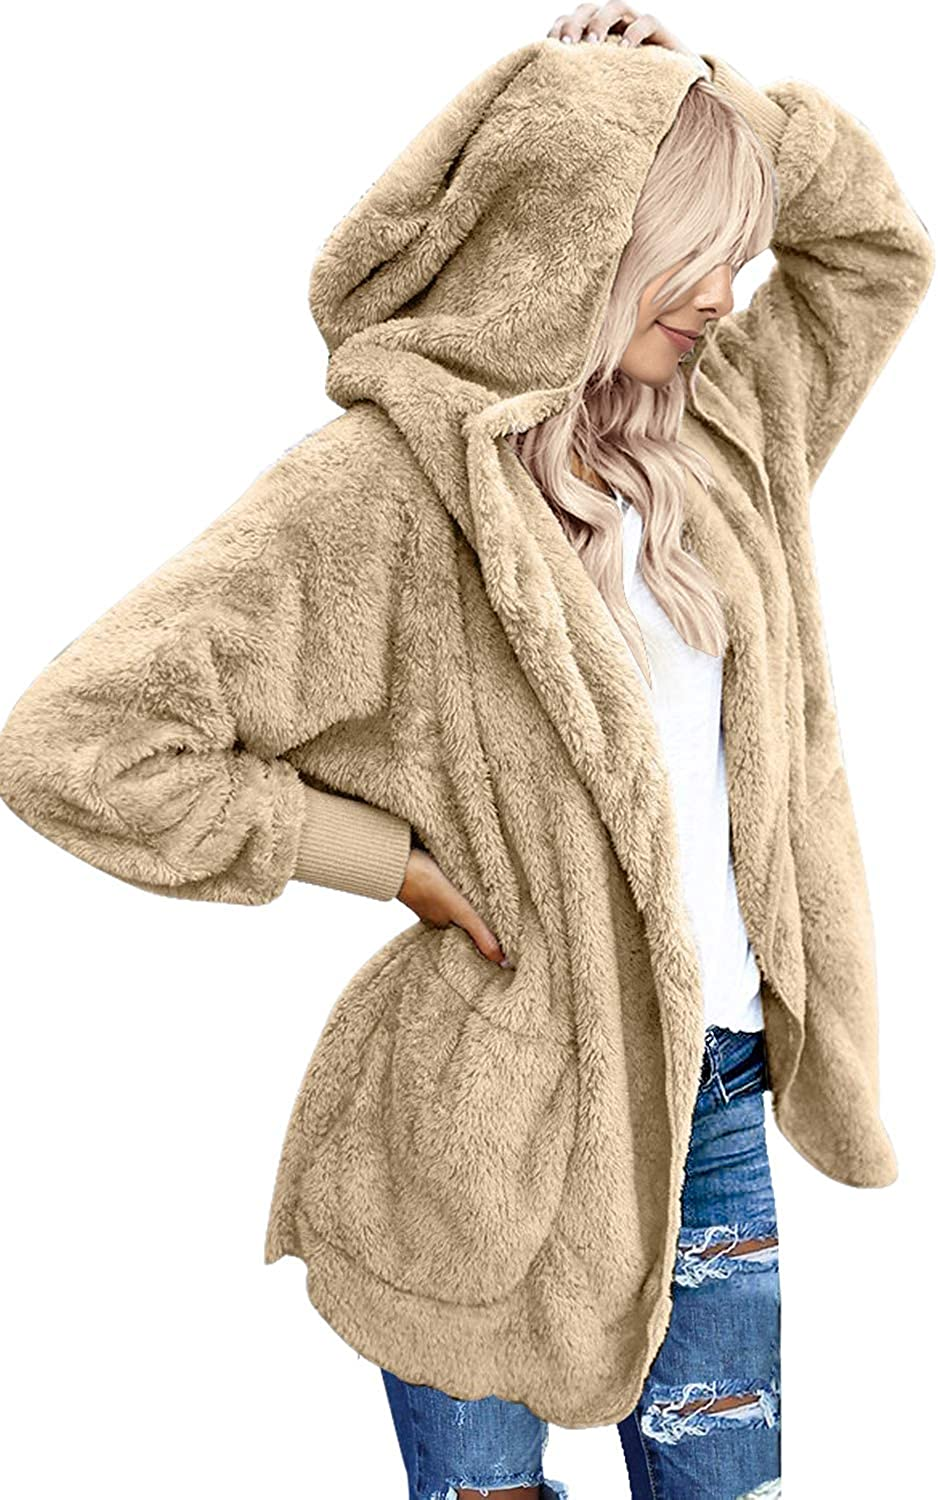 LookbookStore Women's Oversized Open Front Hooded Draped Pockets Cardigan Coat